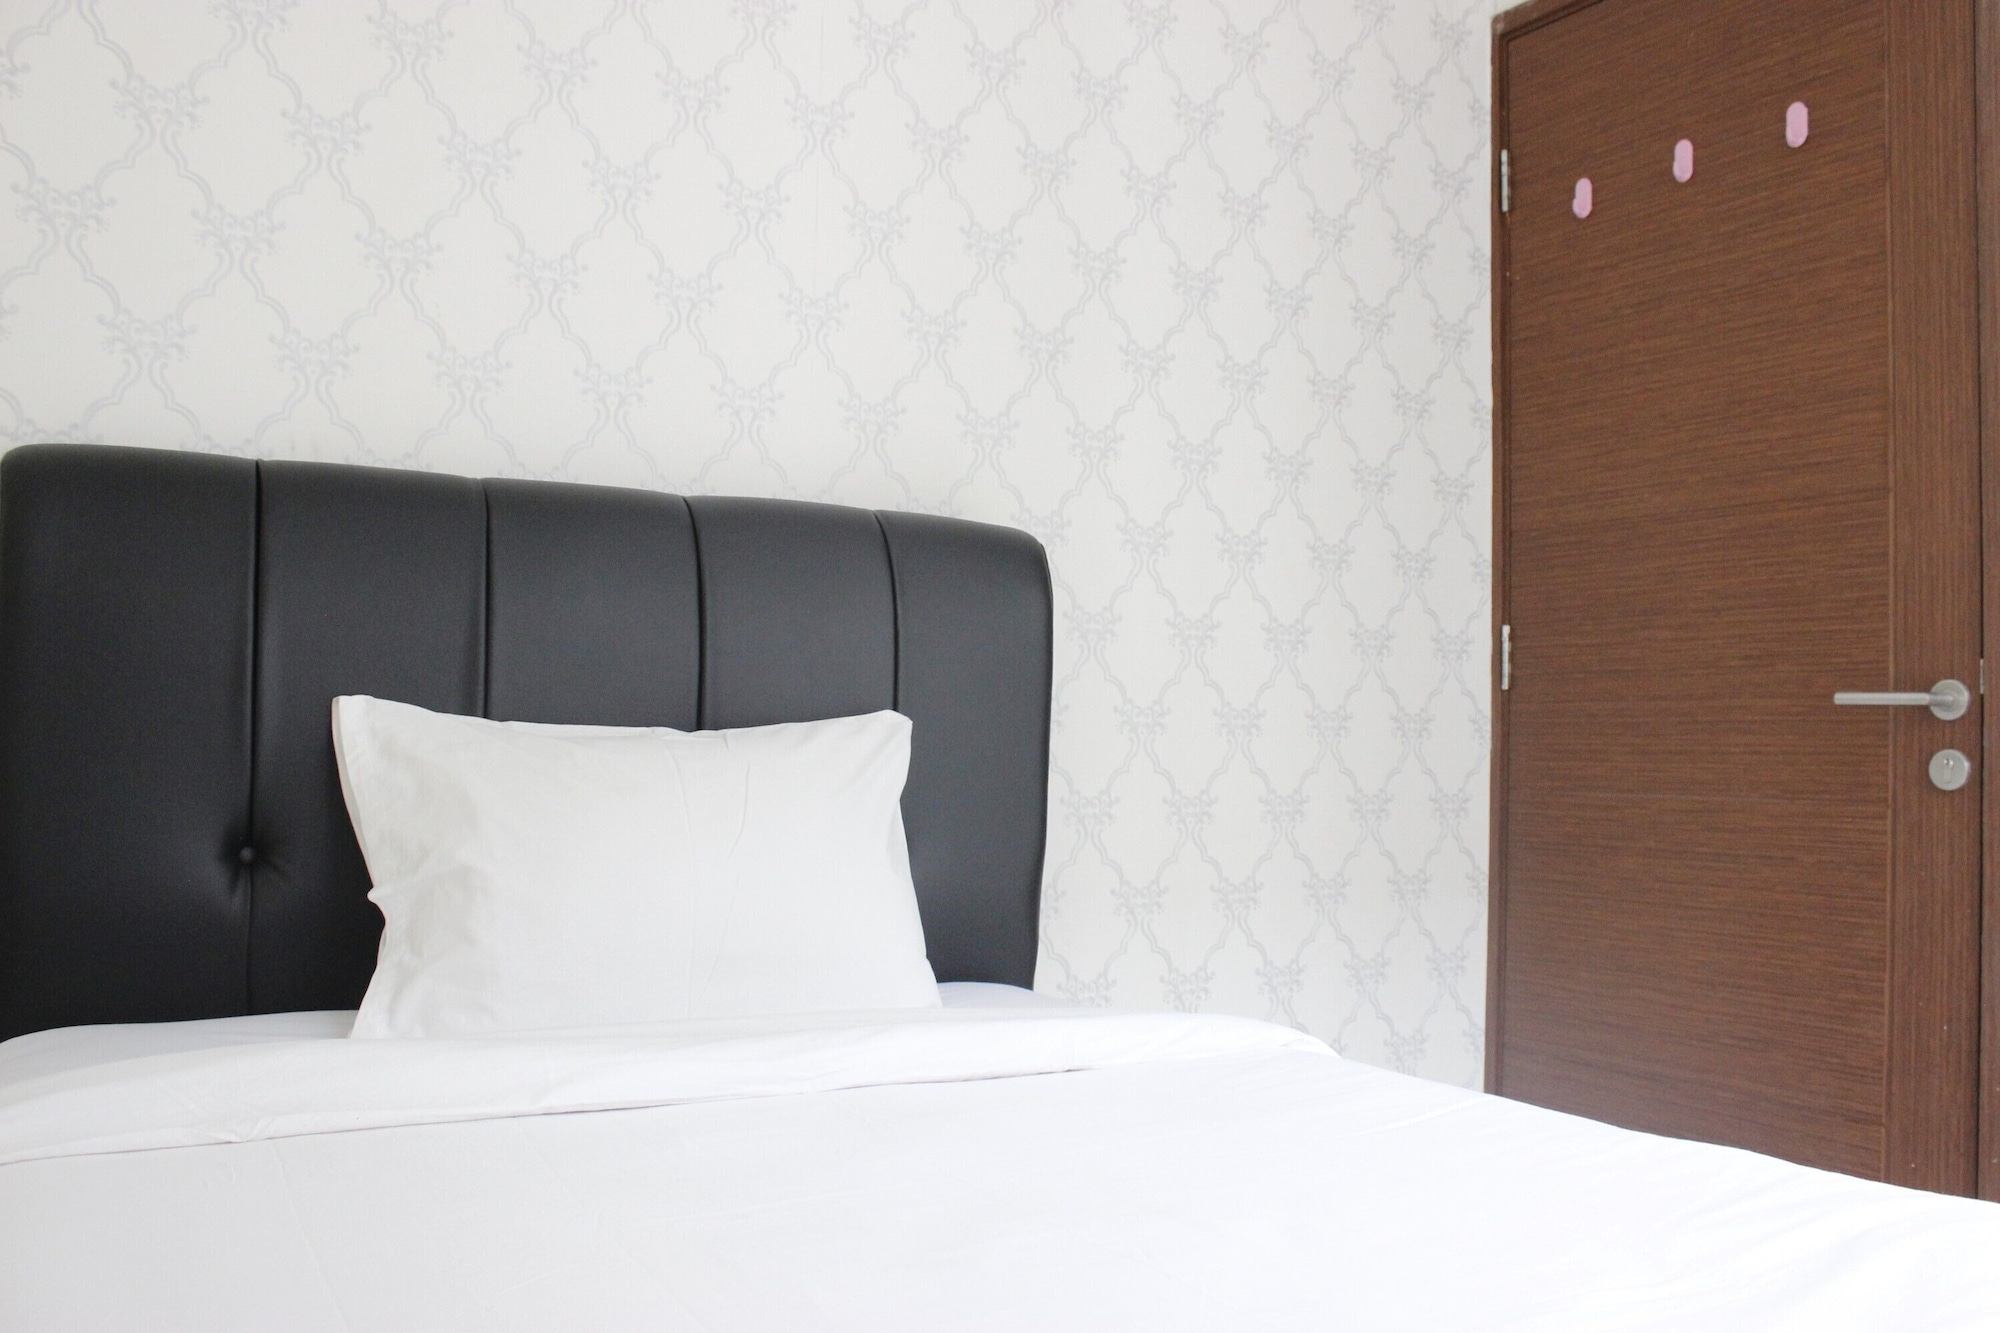 Private & Relaxing 2BR at Sudirman Suites Apartment, Bandung